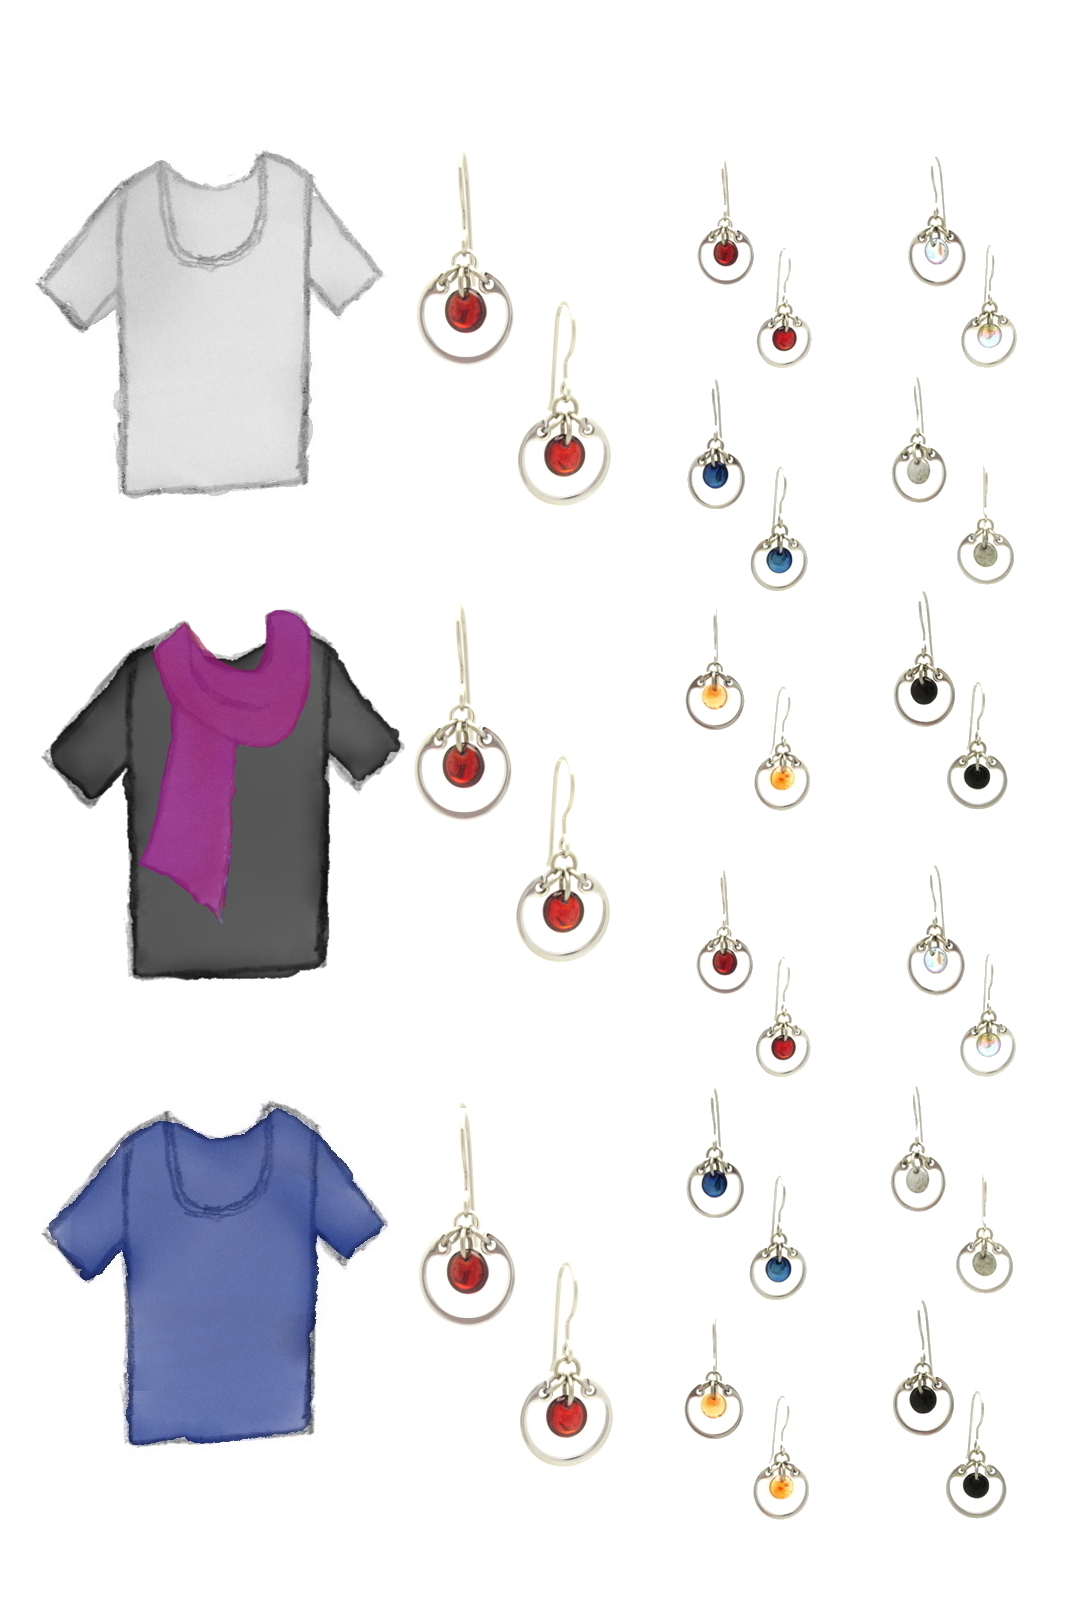 3 style sketches: a gray tee, black tee with fuchsia scarf, & blue tee, with Wraptillion's modern small circle earrings in black, red, navy blue, orange, gray, and pale rainbow